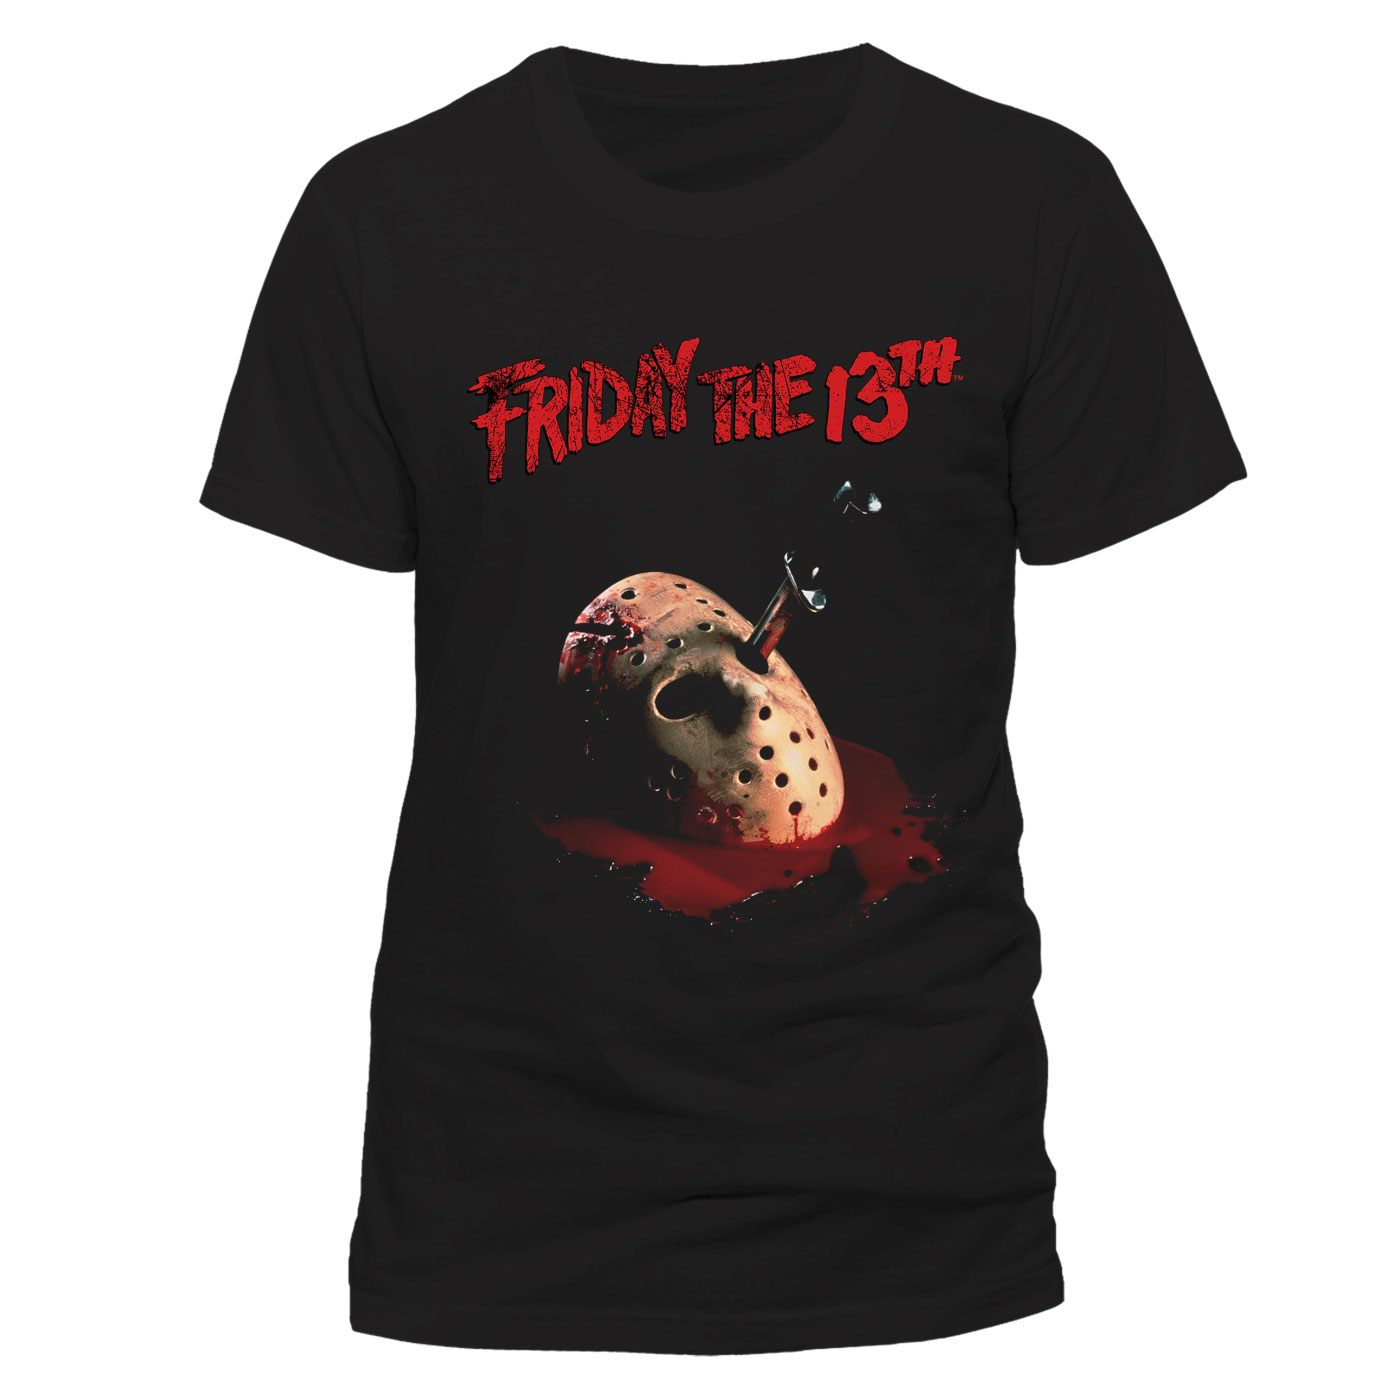 Friday the 13th T-Shirt Dagger Size L